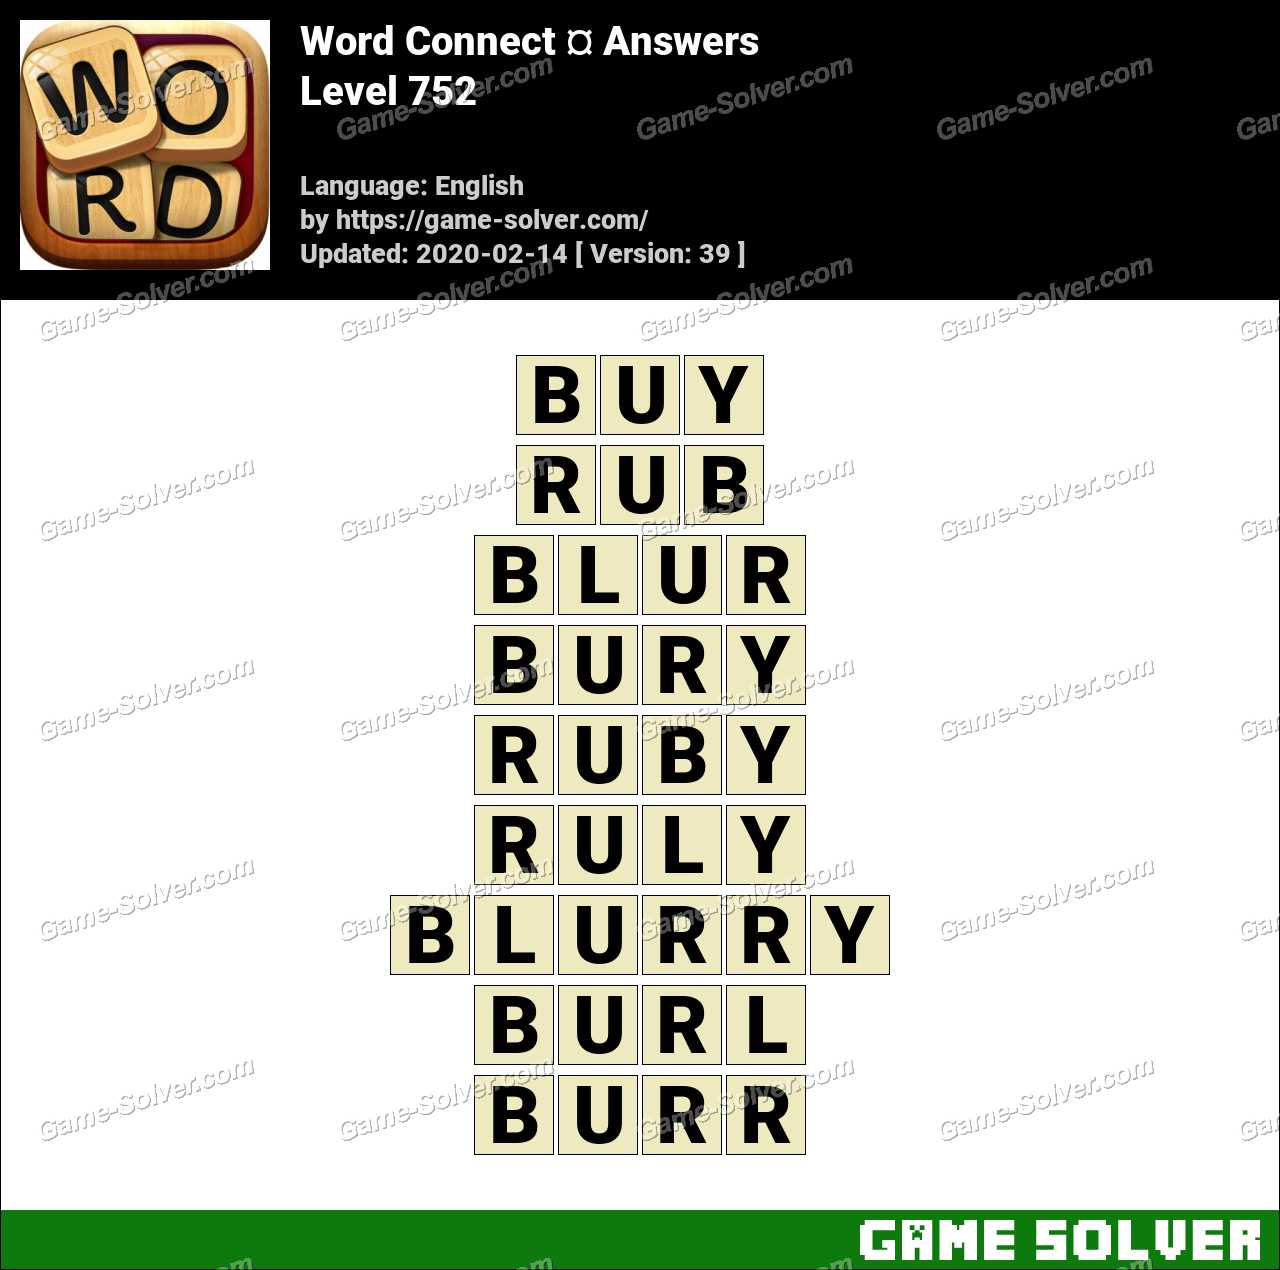 Word Connect Level 752 Answers